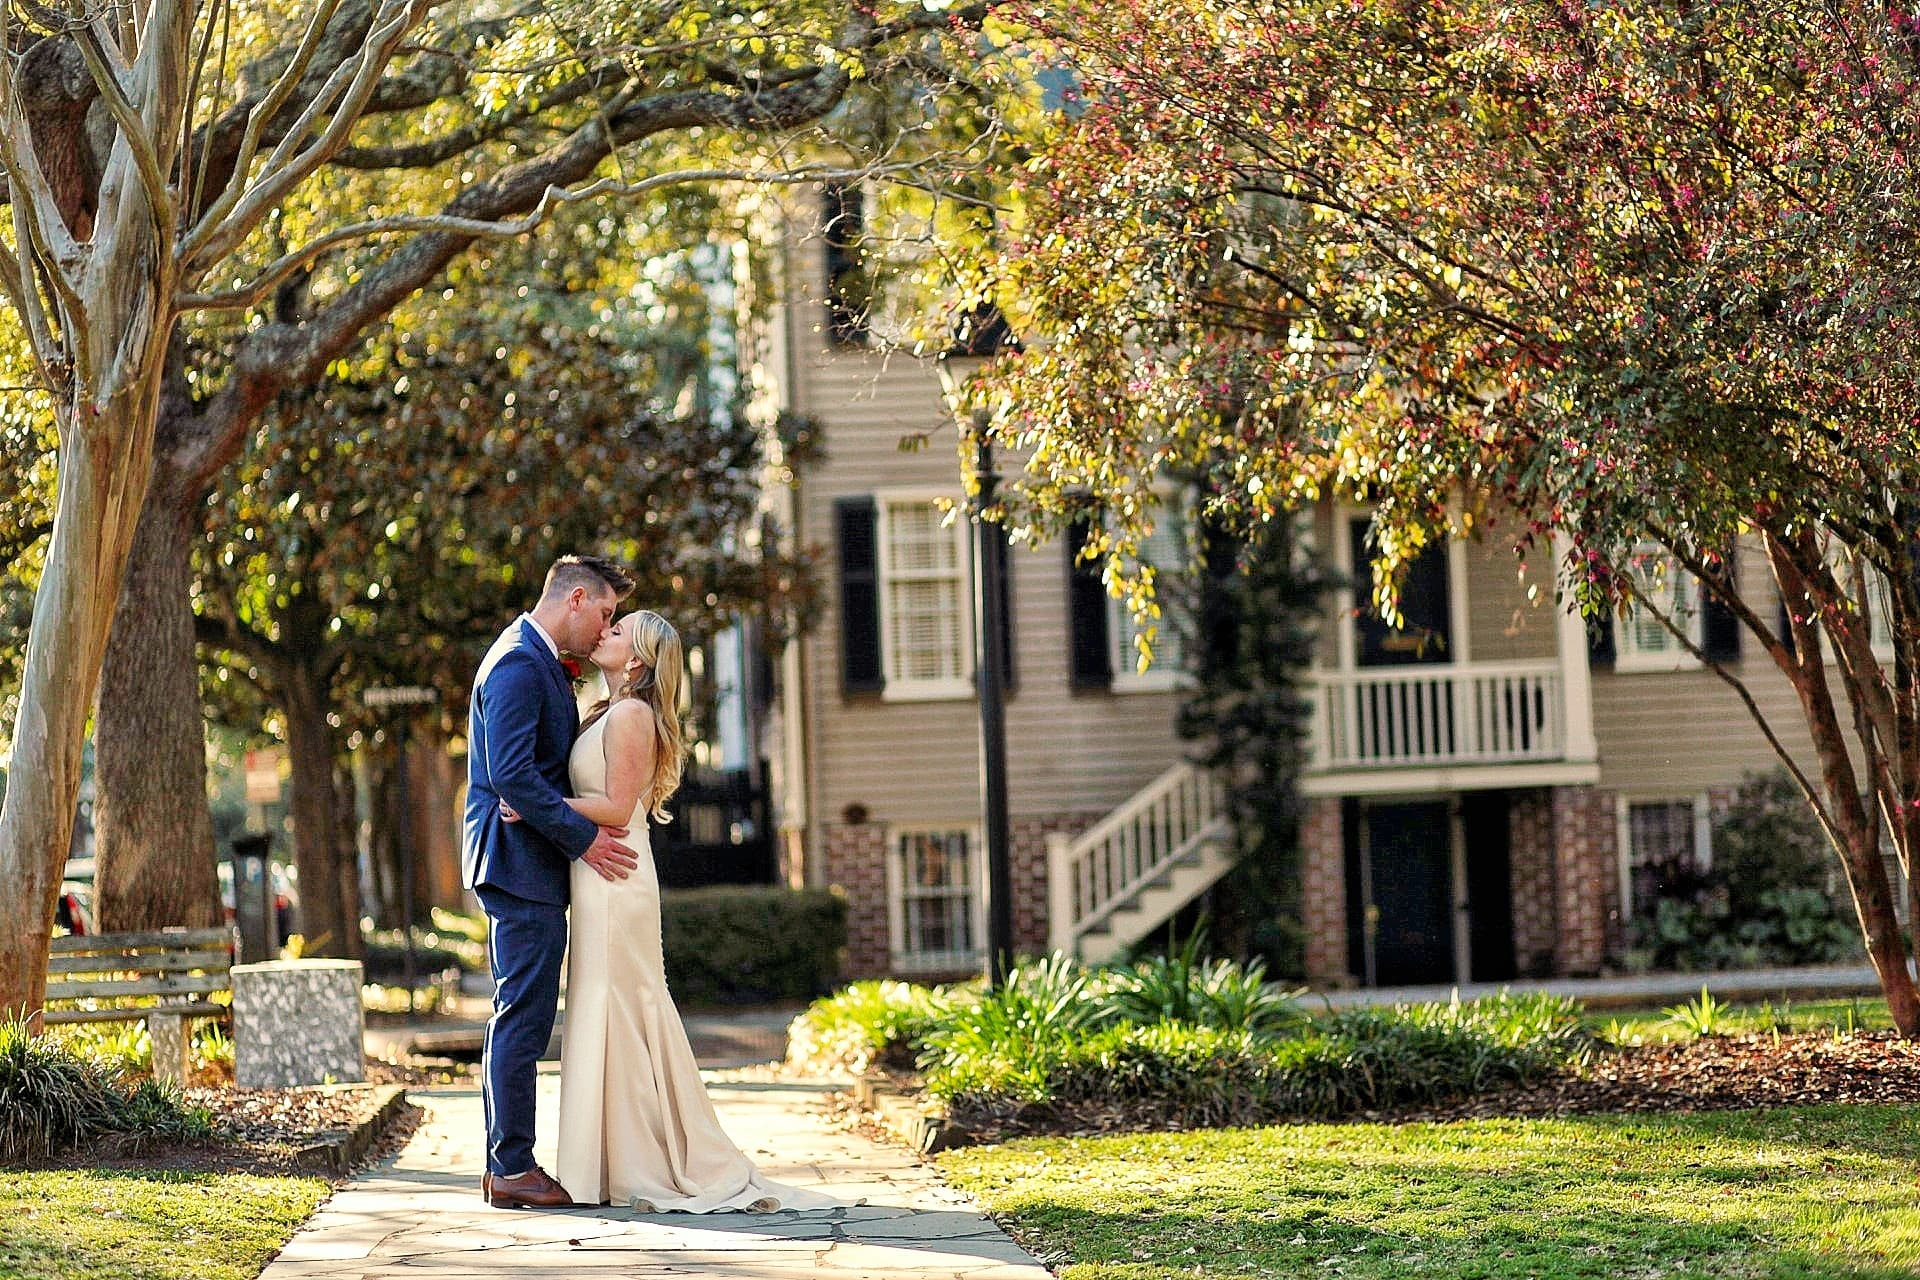 Bride and groom kiss in Washington Square, by the Brice Hotel in Savannah, Georgia.